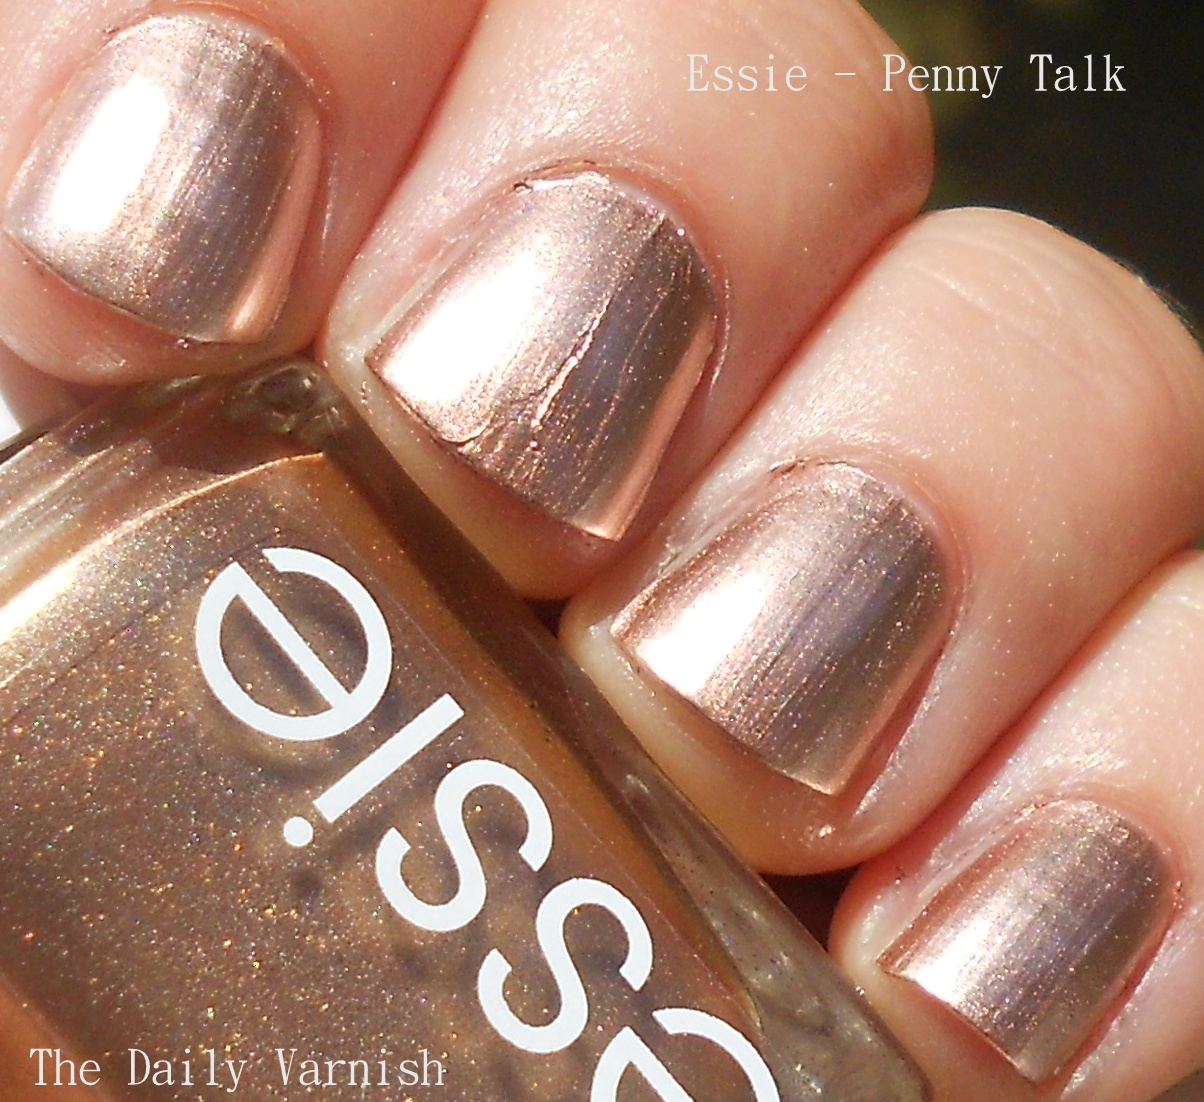 Essie – Penny Talk – The Daily Varnish